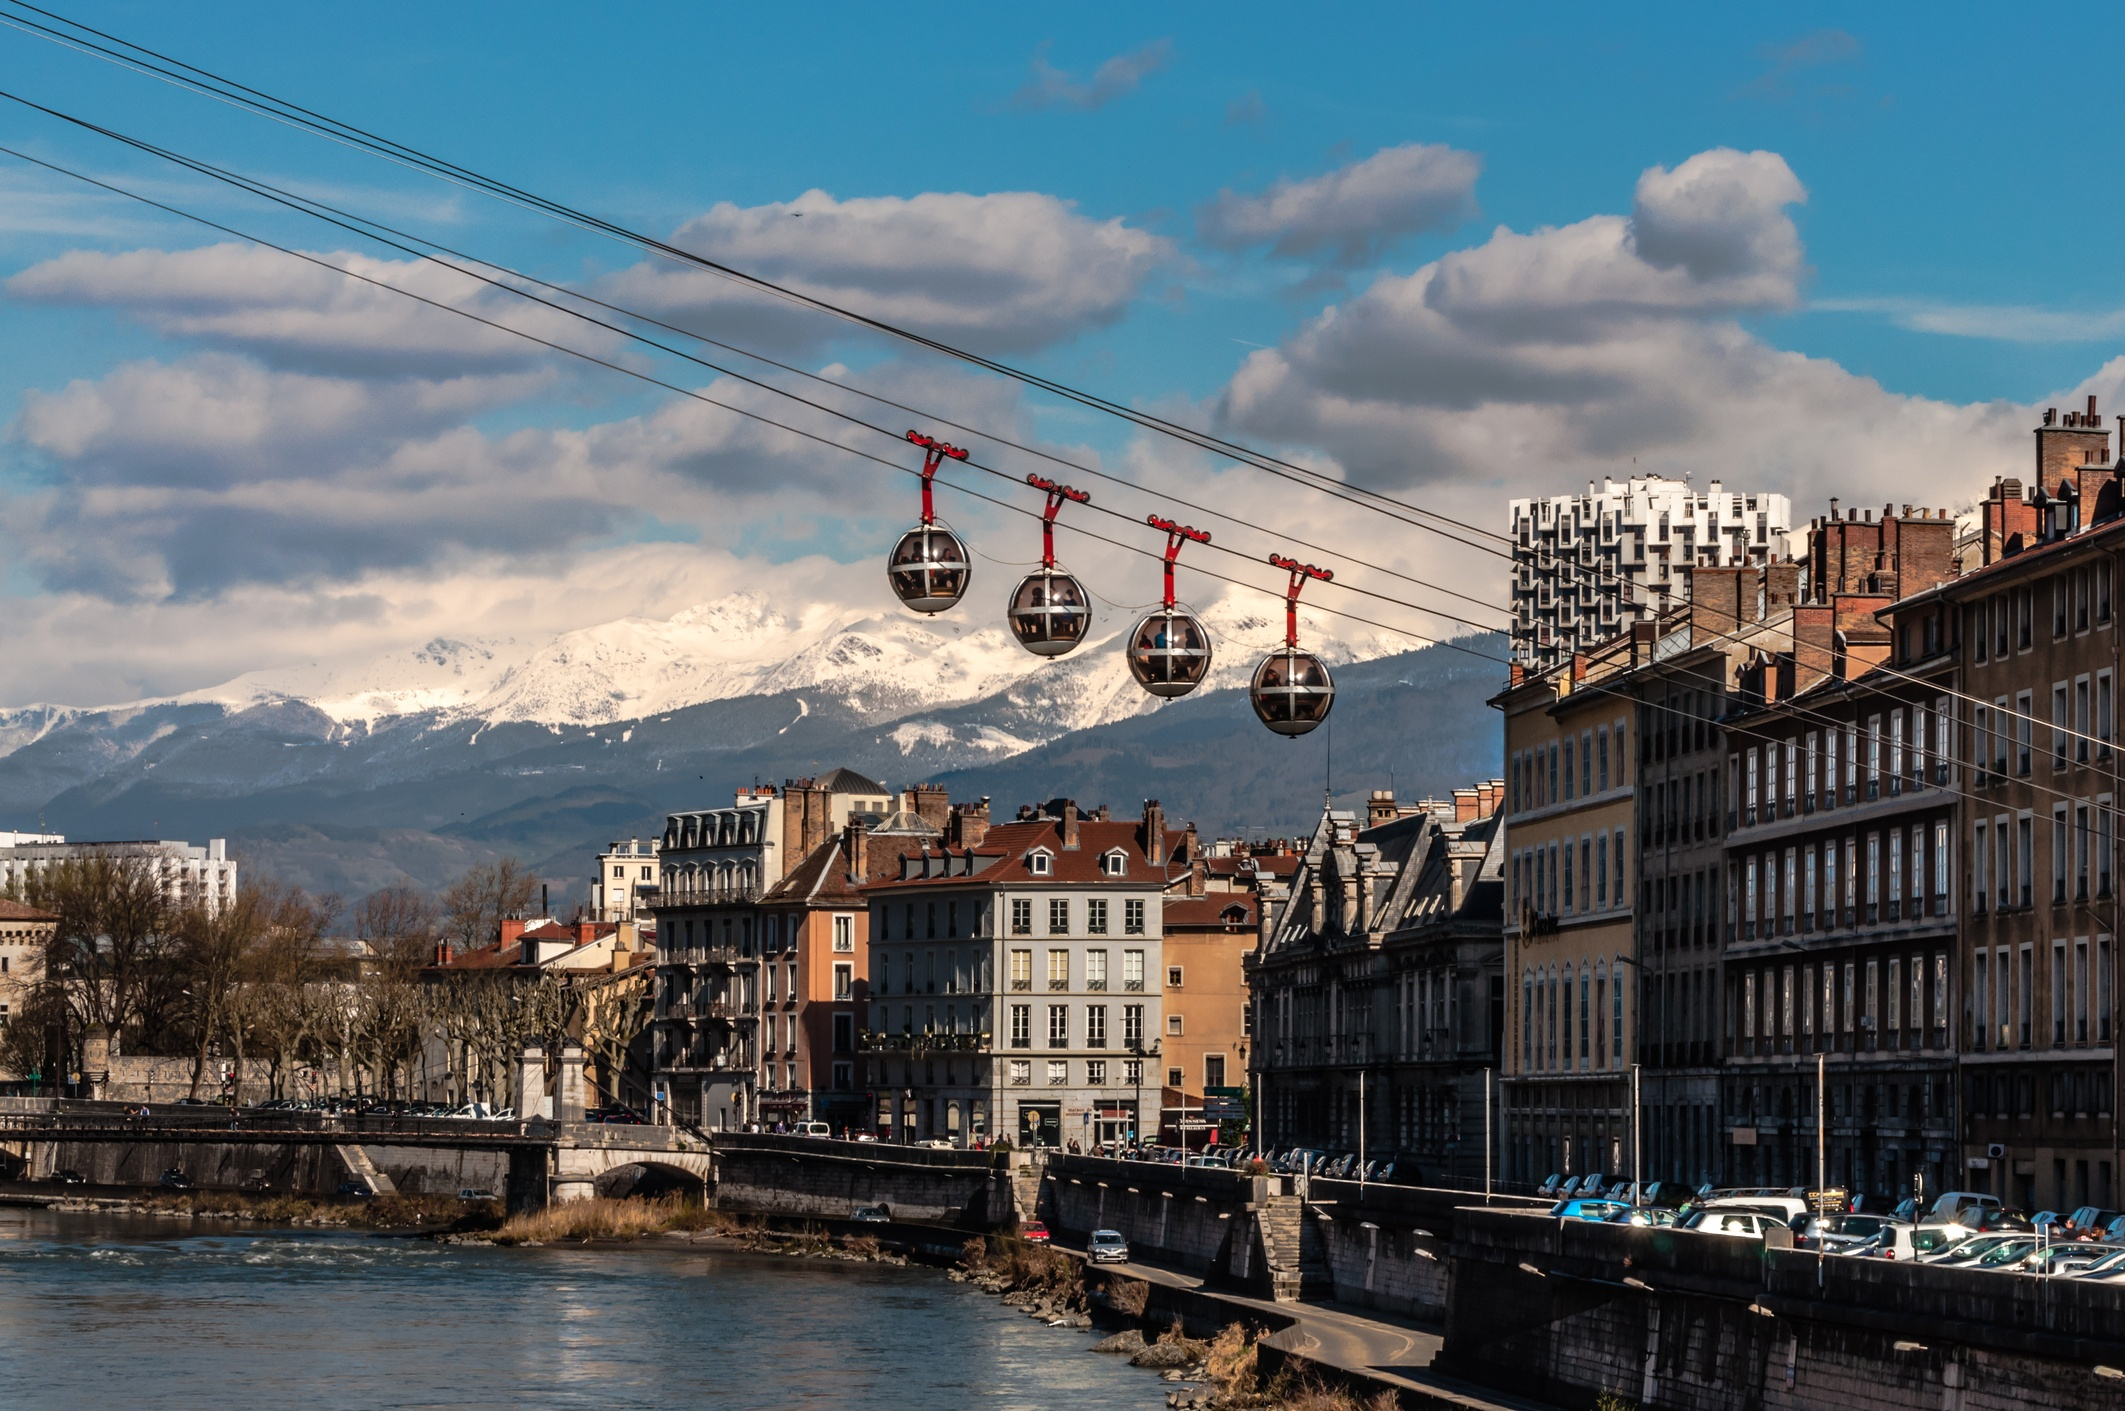 The Grenoble-Bastille cable car and the mountains